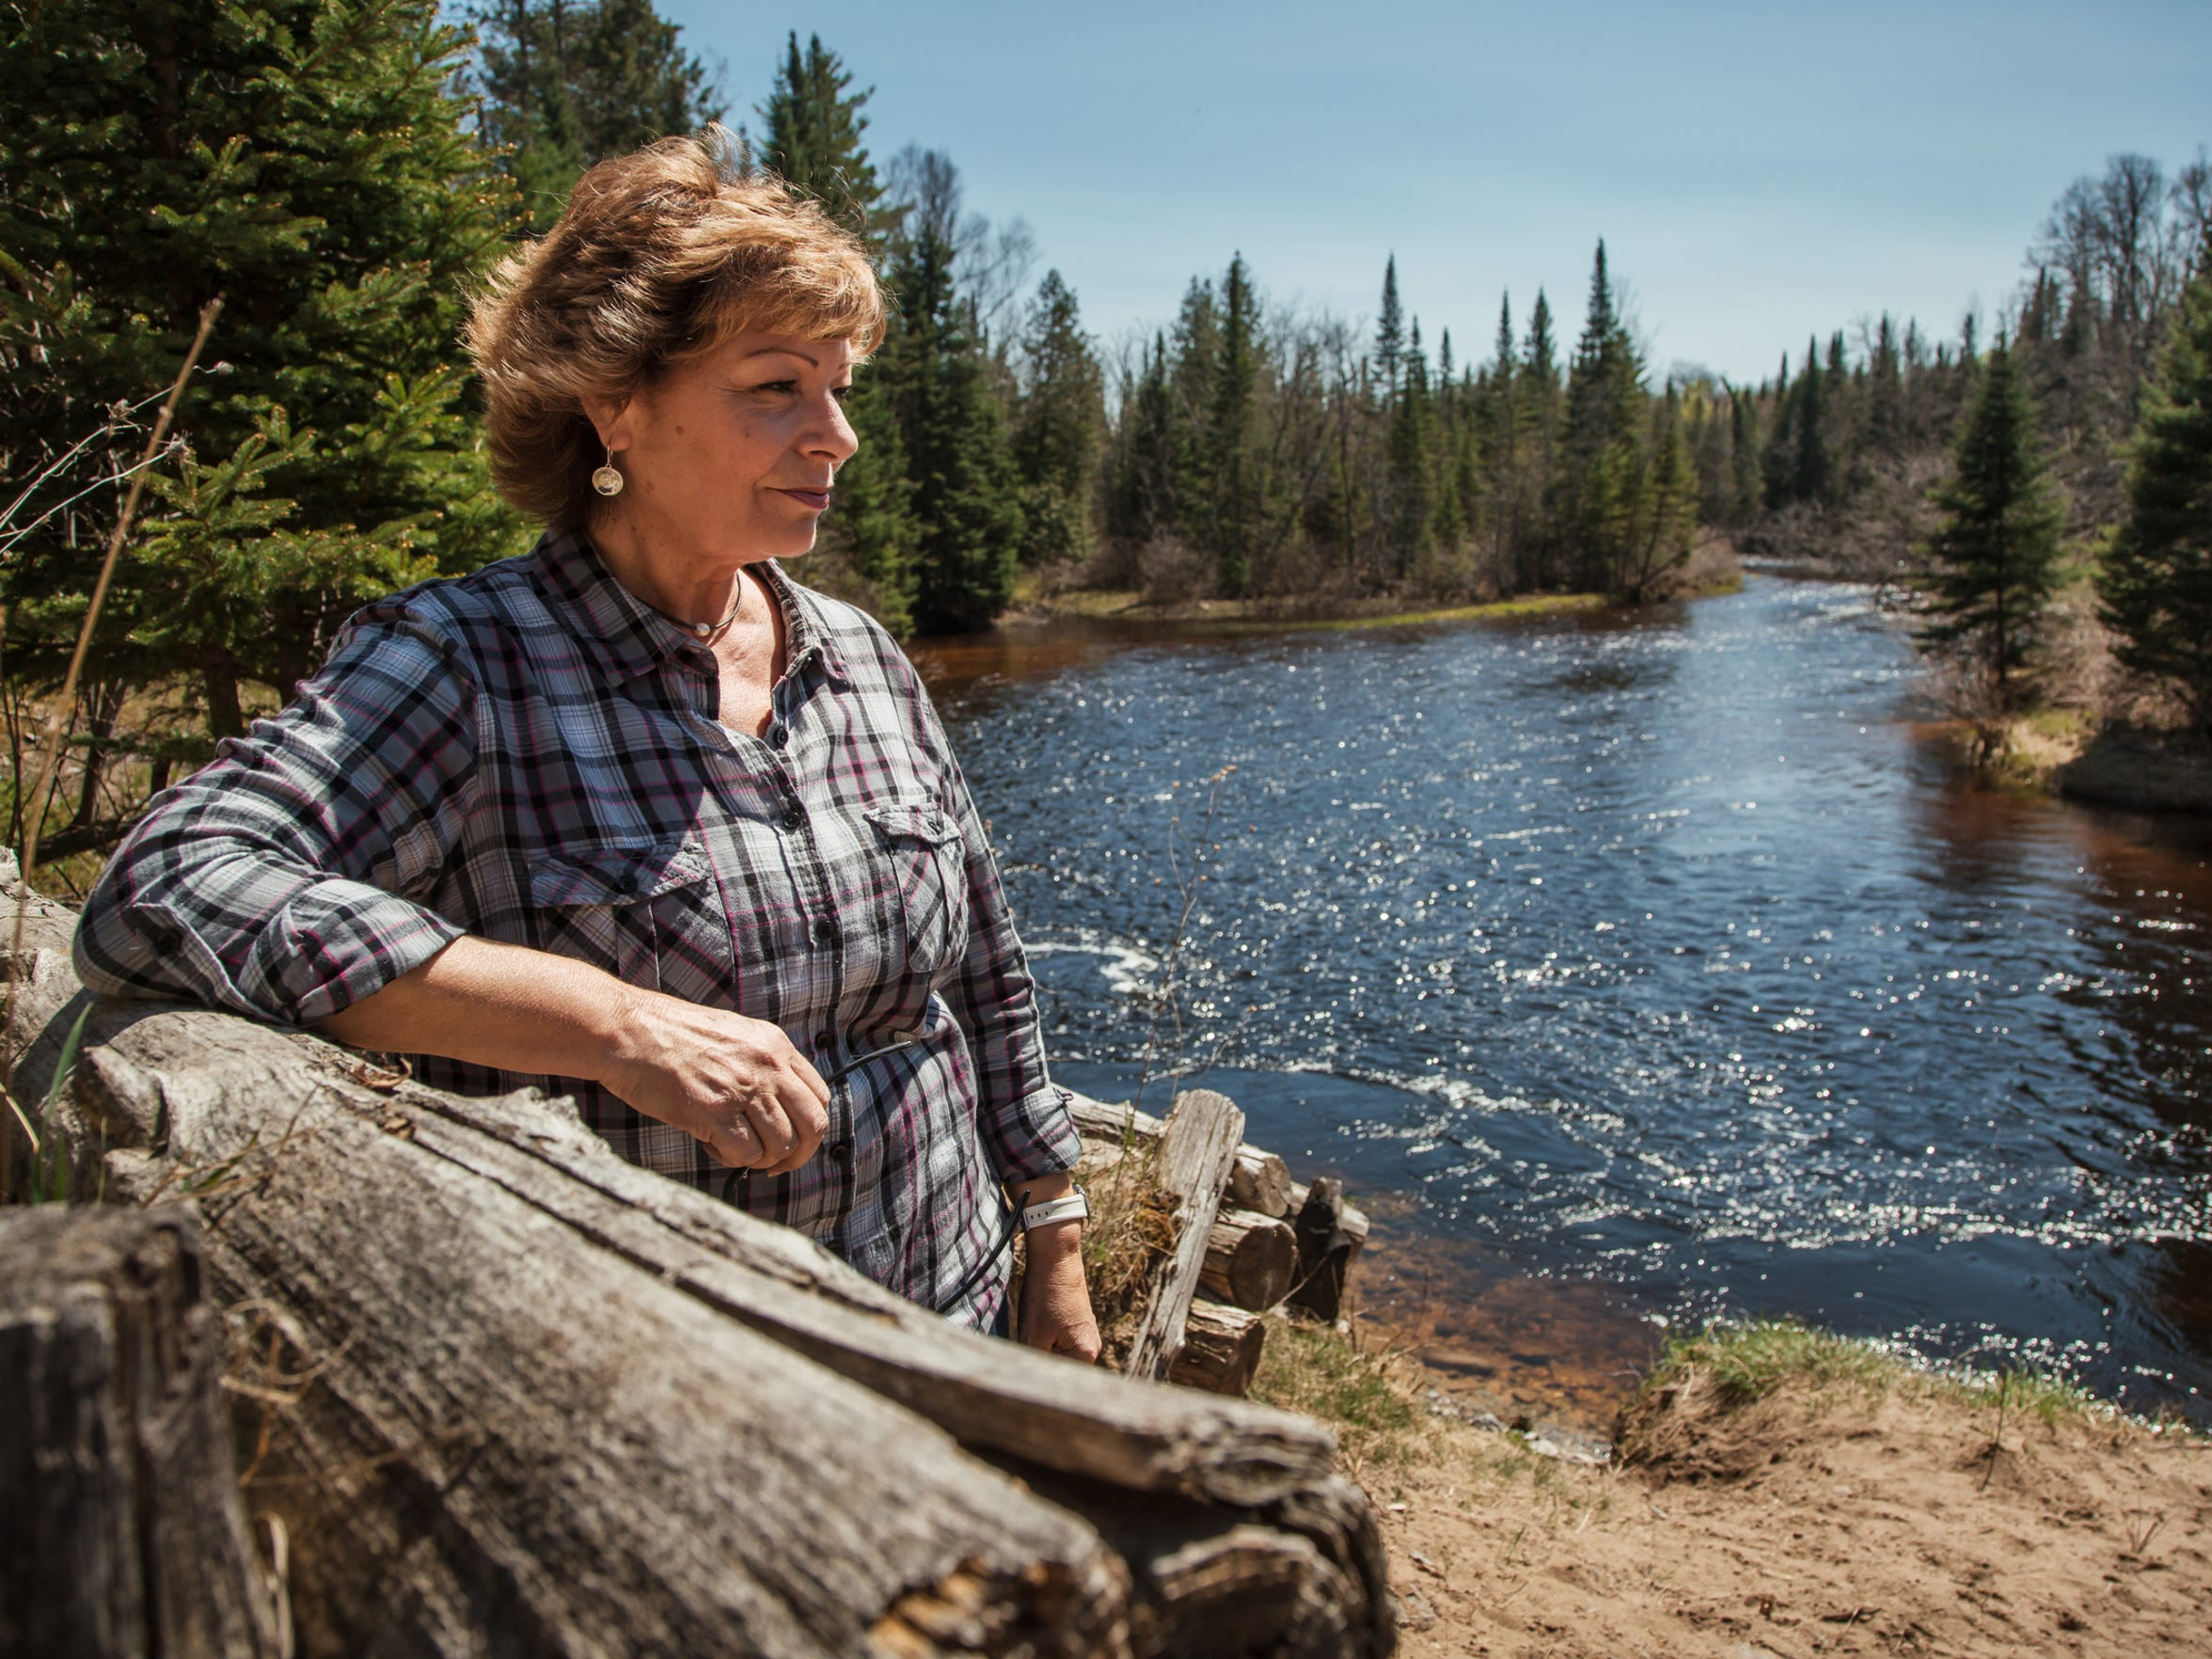 """It's just something intrinsic, that it feels good to the soul, and part of it is the experience of being out in nature, but also to know that together we have made a difference in these last 20 years to help this population,"" said Brenda Archambo, founder of the  Black Lake Chapter of Sturgeon for Tomorrow, while standing along the Black River in Onaway in northern Michigan on Tuesday, May 15, 2018.  Archambo and her organization have made efforts to help restore the Great Lakes' dwindling sturgeon population, spread awareness of the problem and help protect them from poaching."